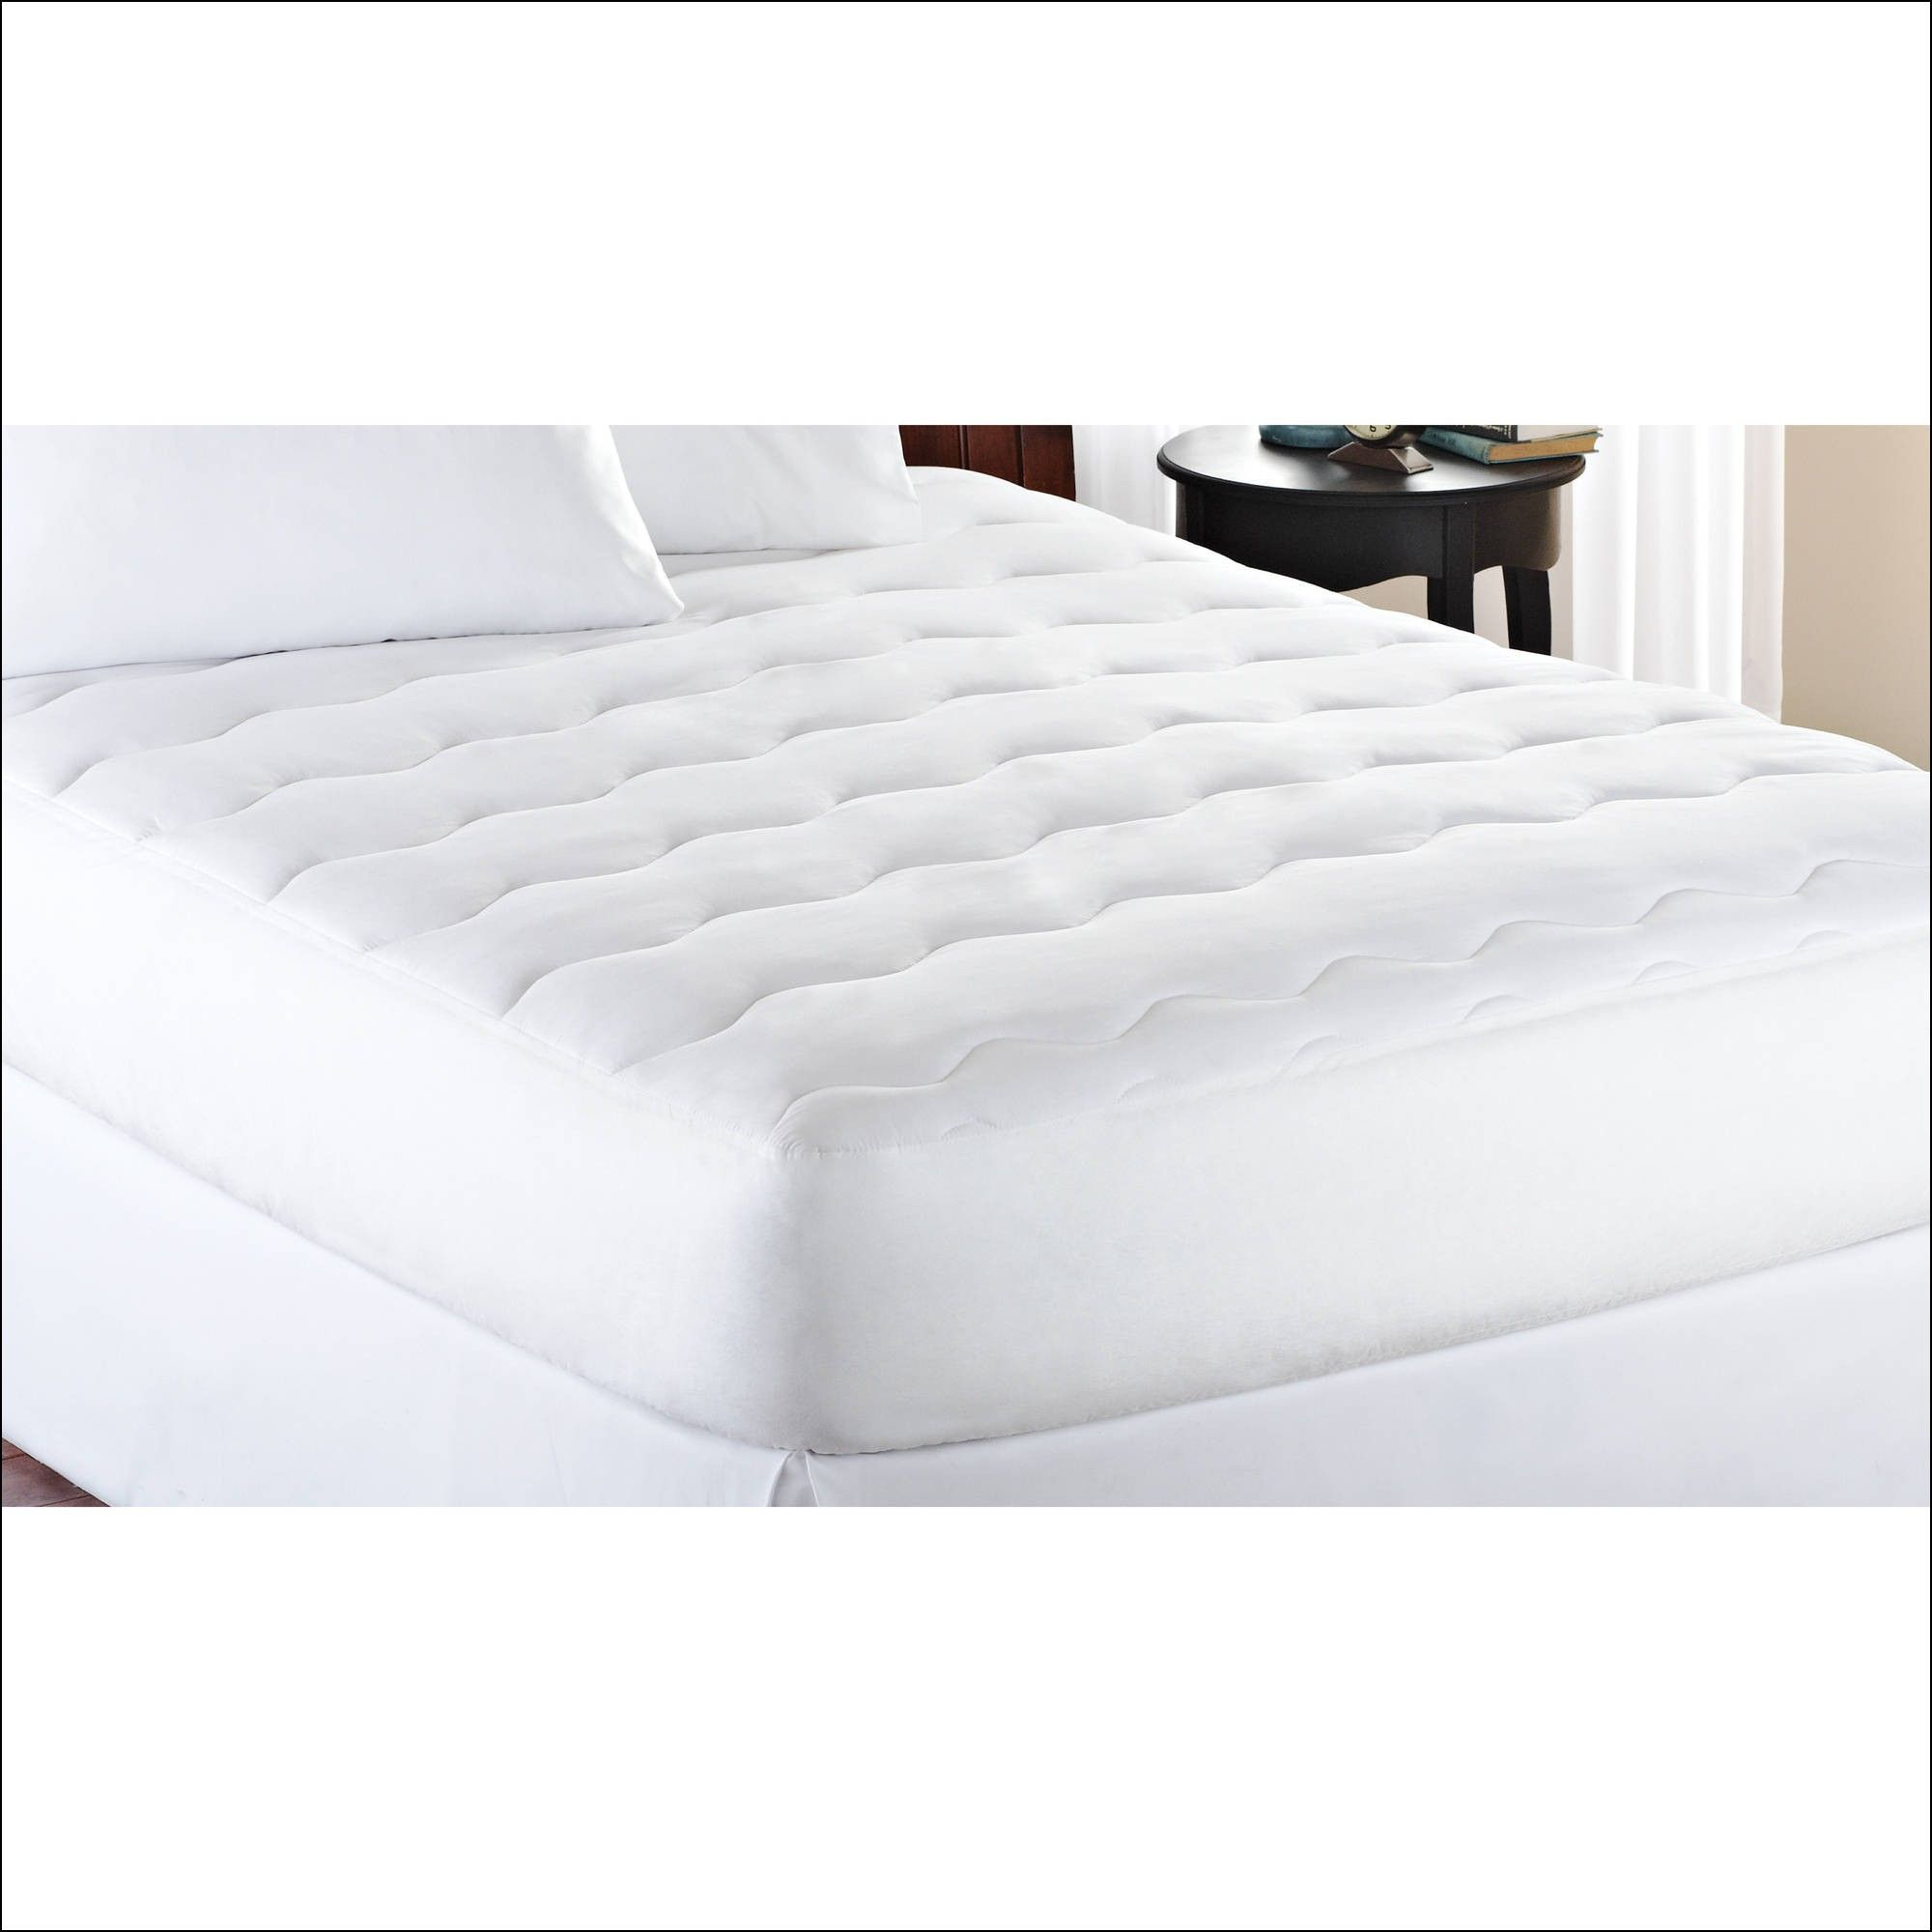 simmons top beautyrest pdx innerspring mattresses mattress pillow wayfair silver plush topper